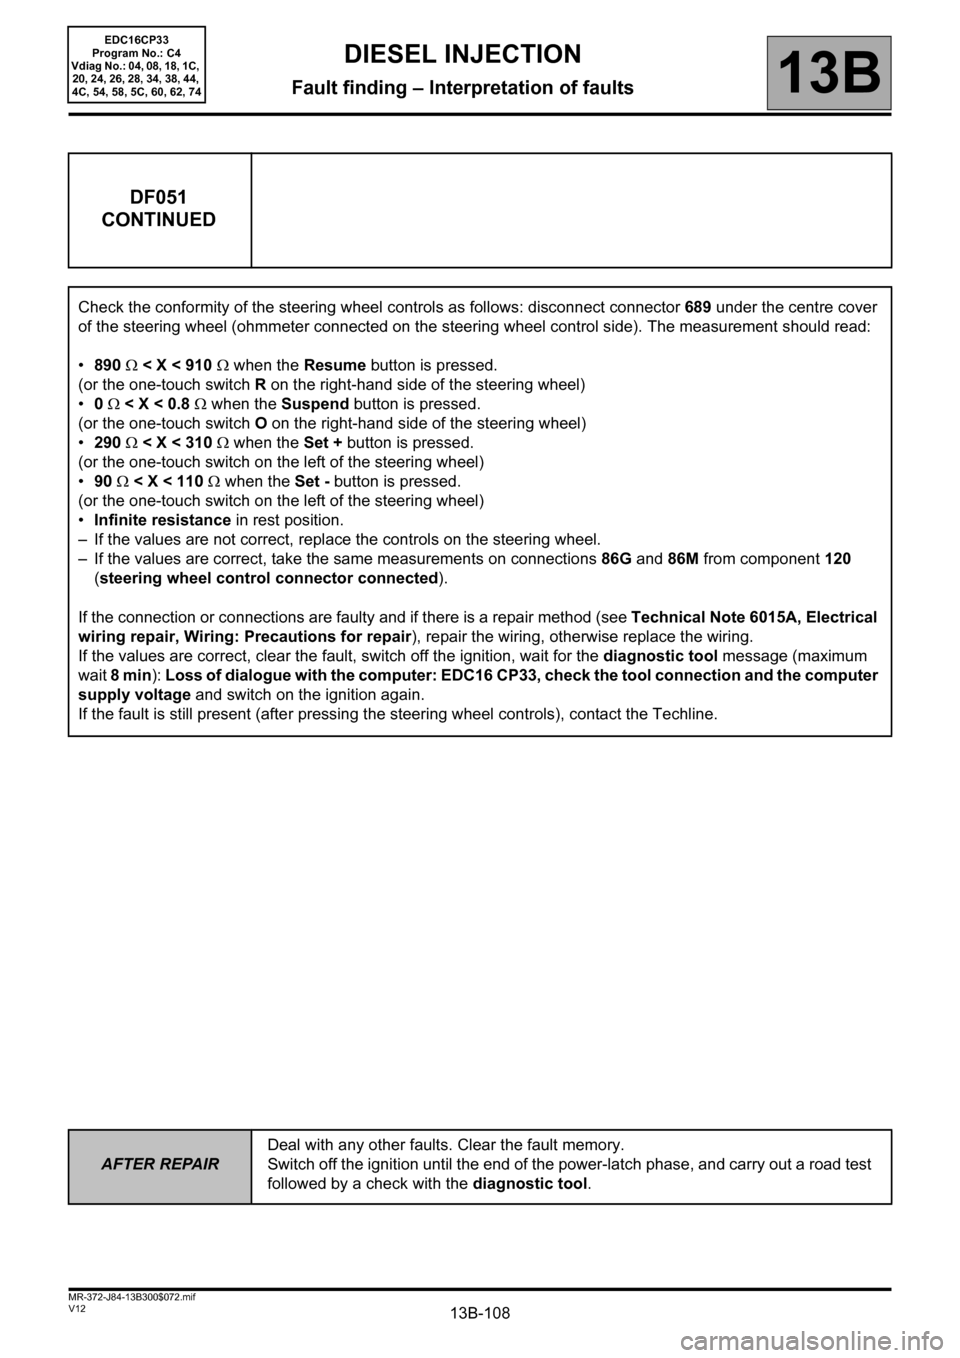 RENAULT SCENIC 2012 J95 / 3.G Engine And Peripherals EDC16CP33 Workshop Manual, Page 108